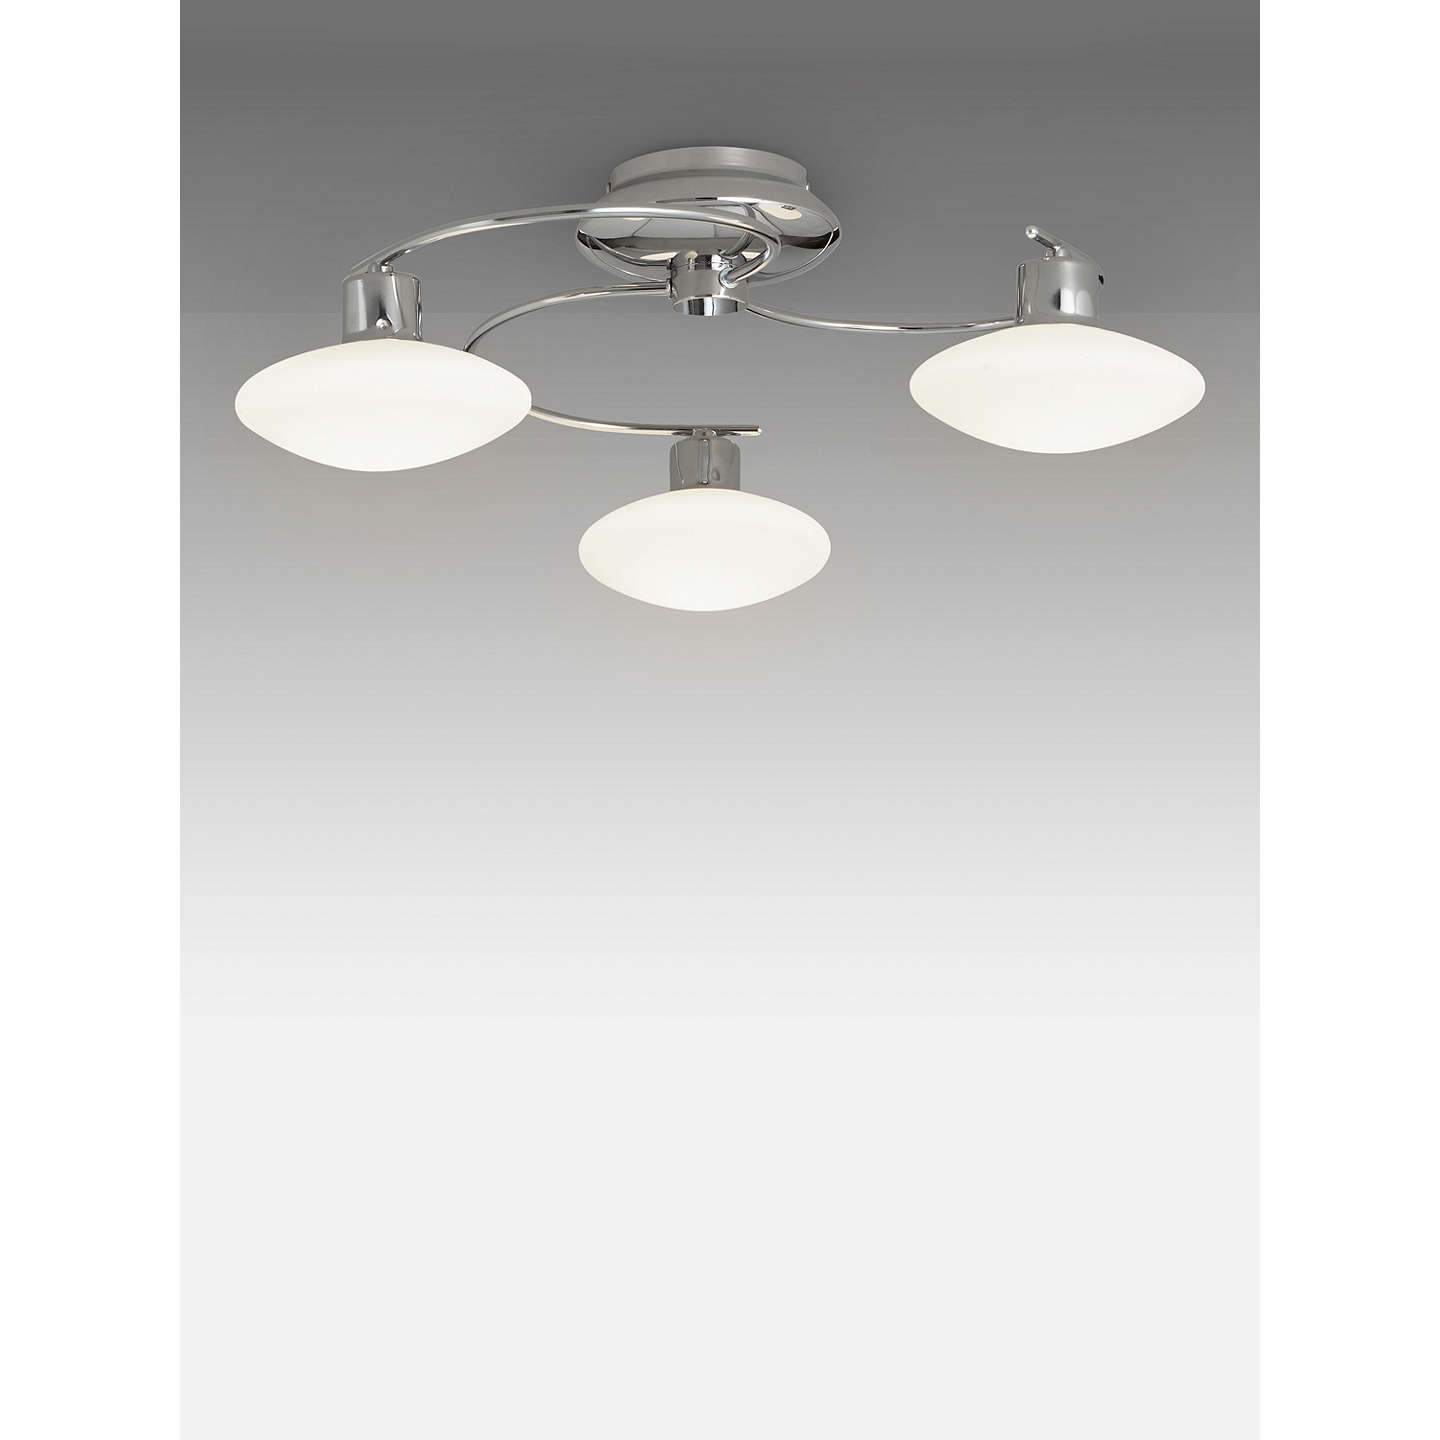 John Lewis Tameo Semi Flush, 3 Arm LED Ceiling Light